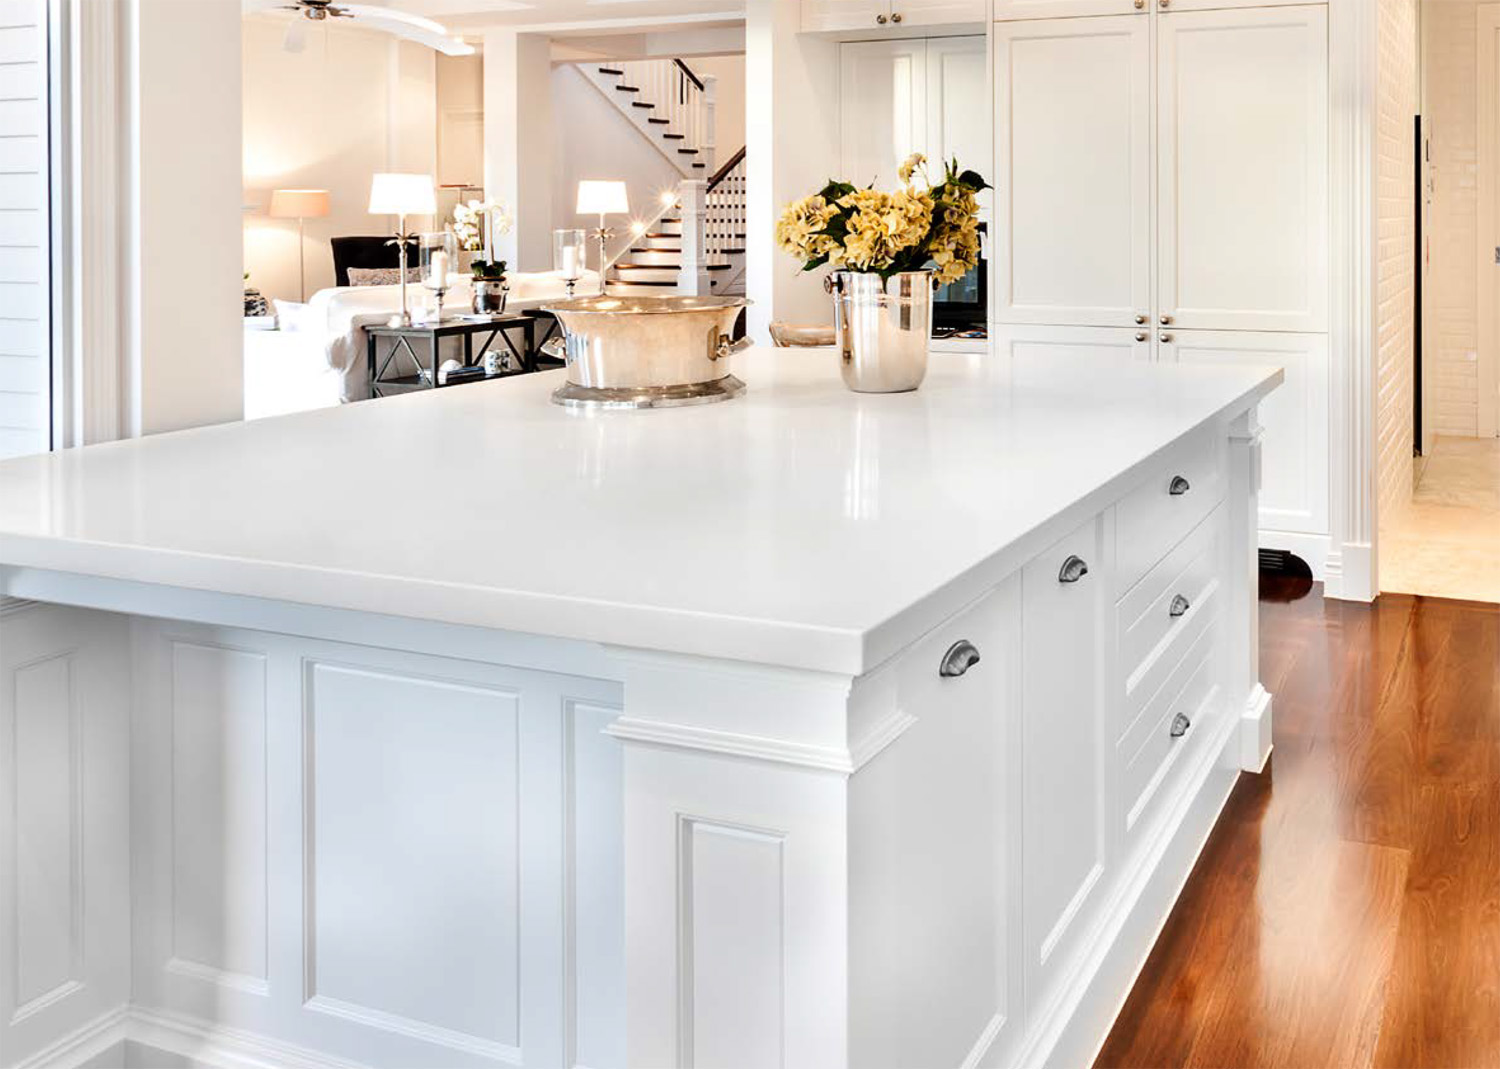 Cabinet and Countertop Business In Florida